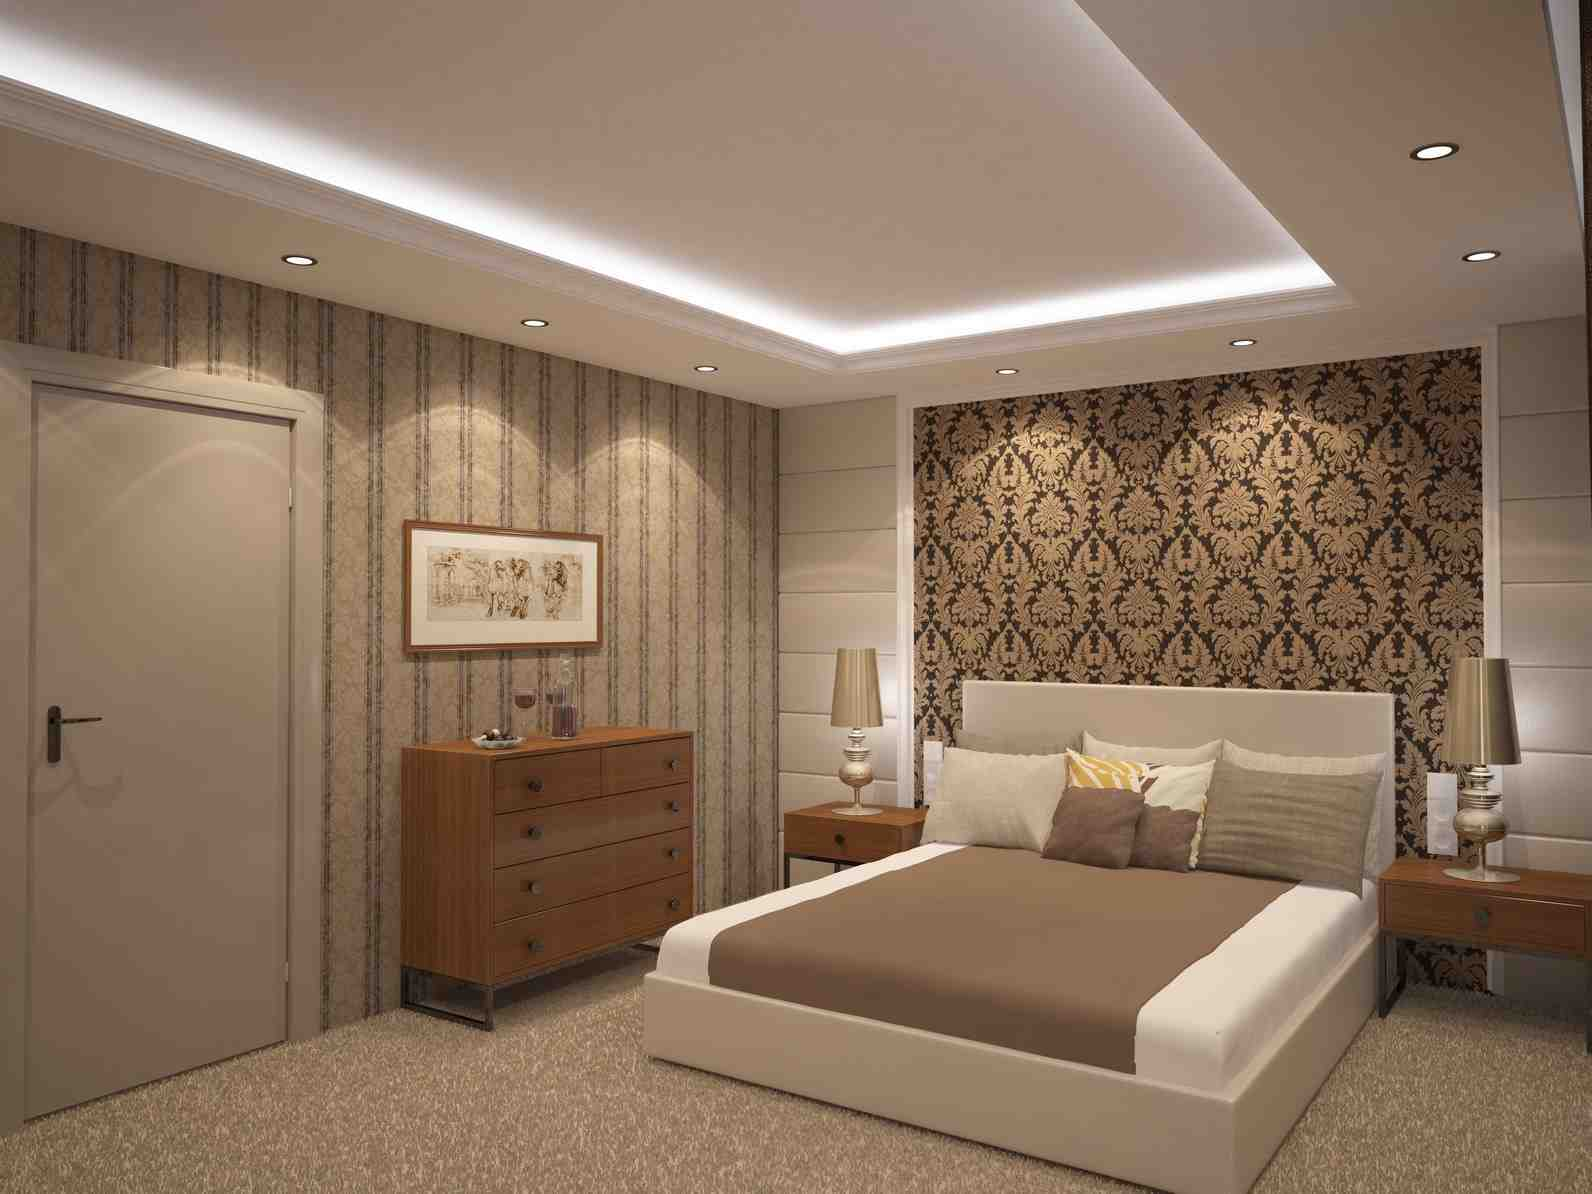 plafond faux plafond design et d coratif en pl tre plafond suspendu service de pl trerie. Black Bedroom Furniture Sets. Home Design Ideas